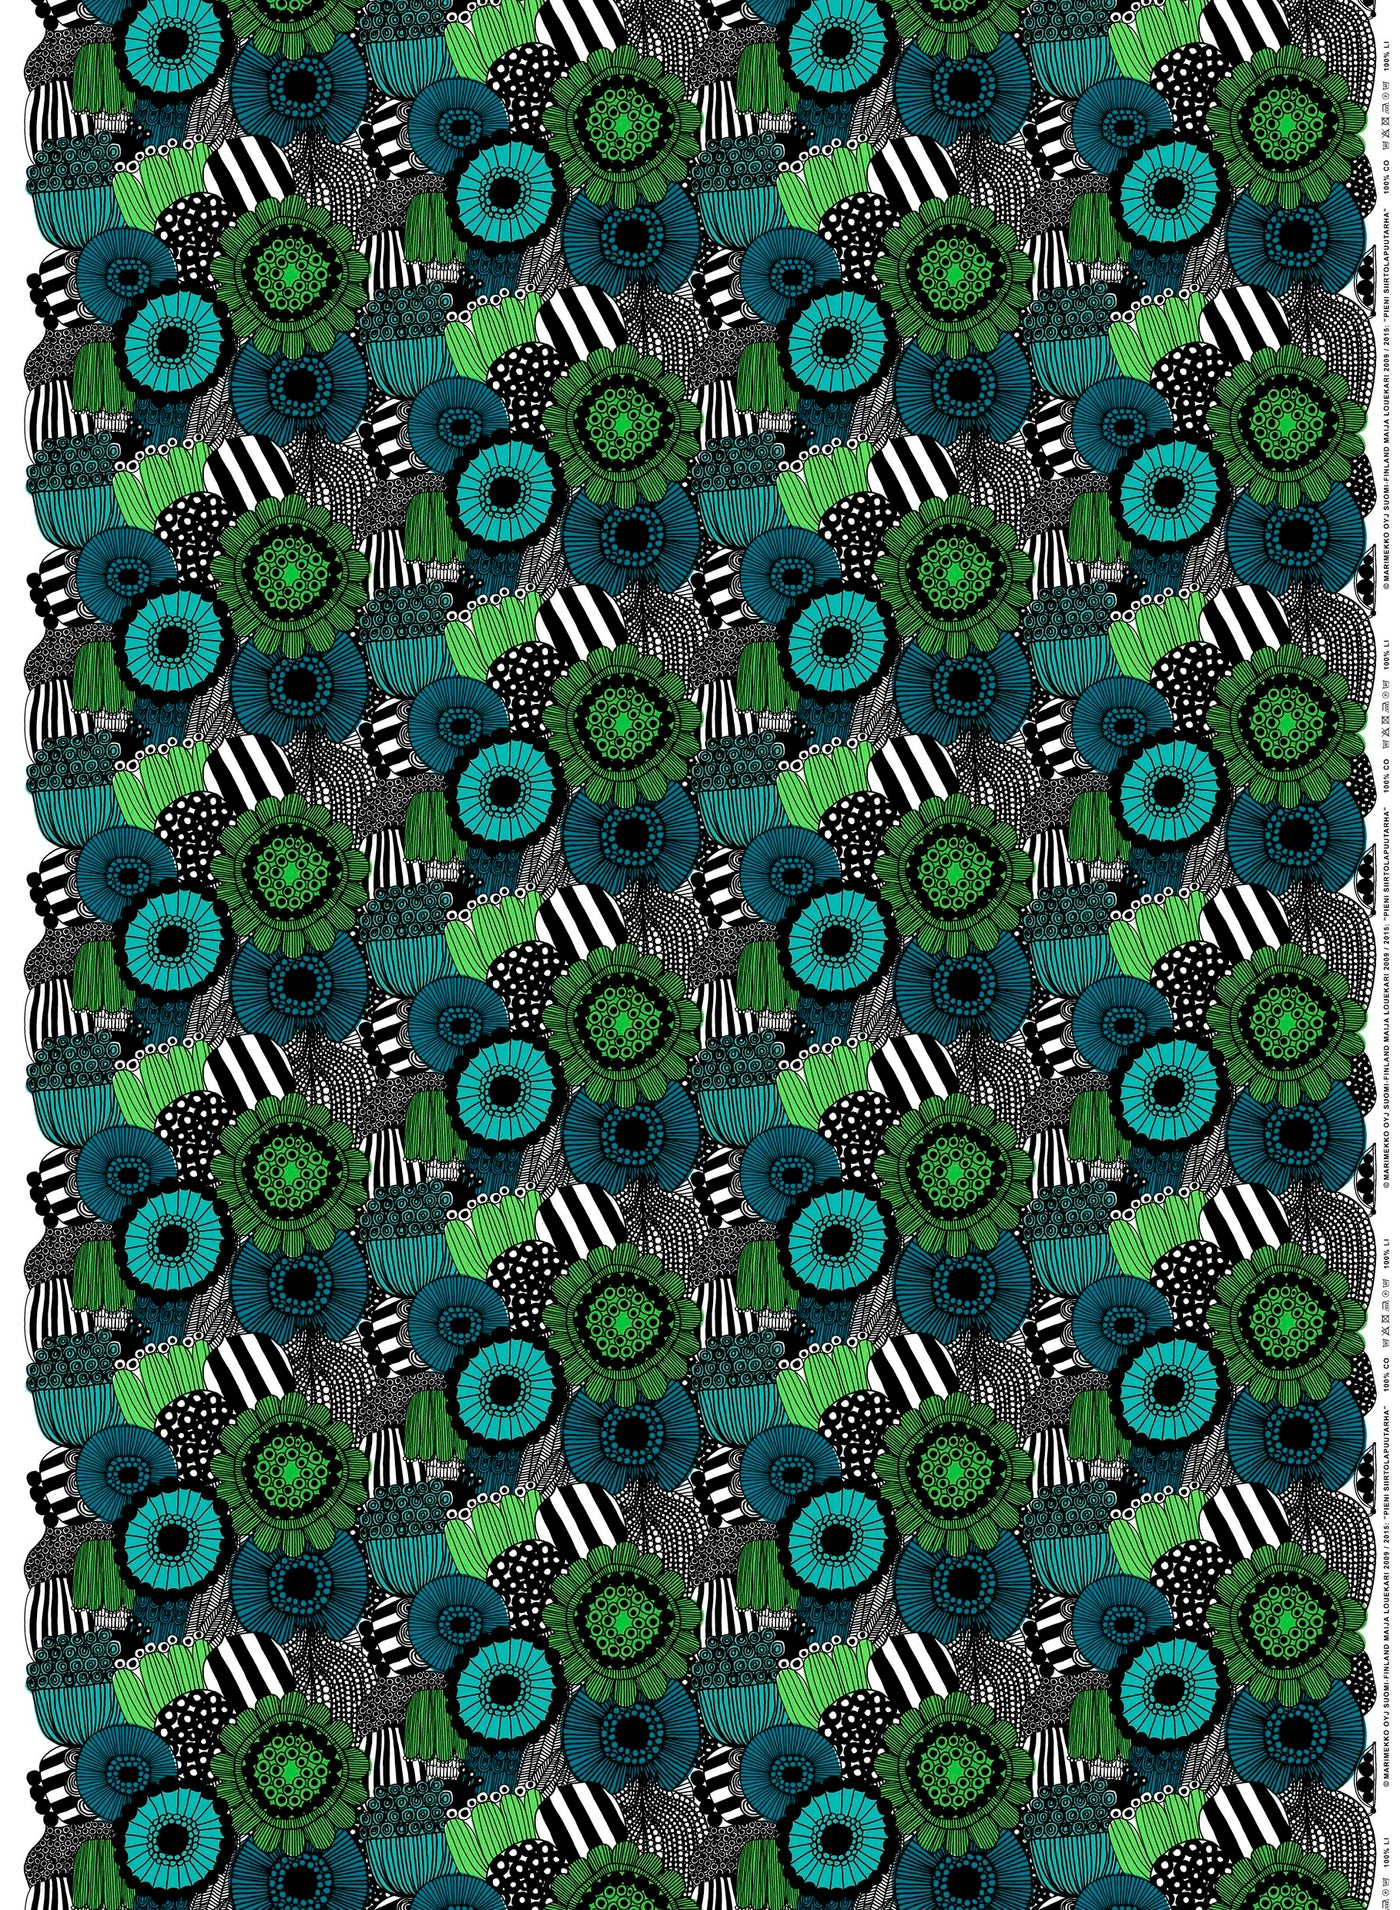 Marimekko 100% Cotton Pieni Siirtolapuutarha Fabric (White, Green, Black)